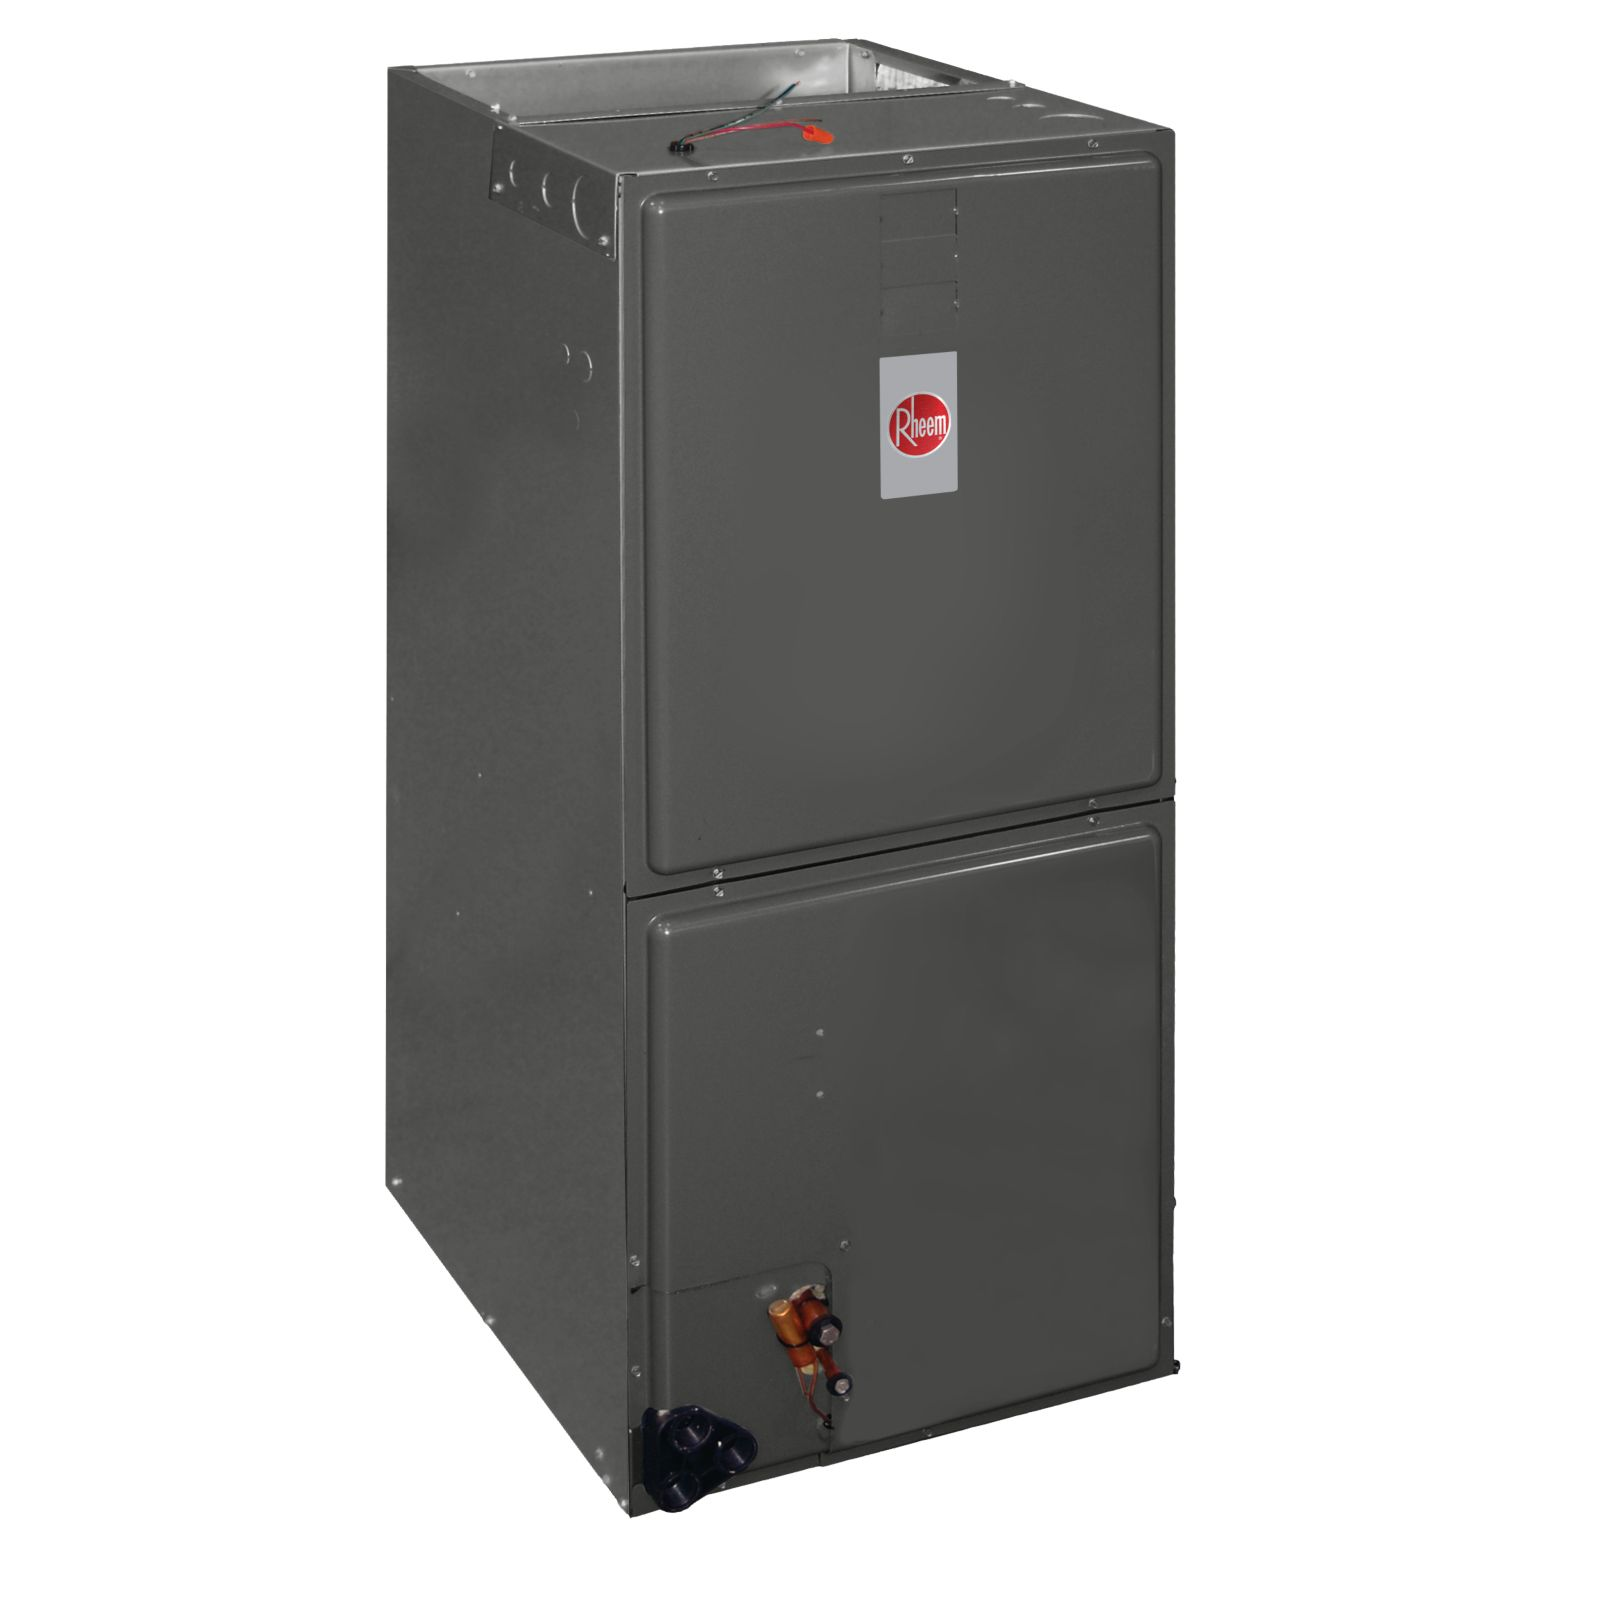 Rheem RHSL-HM3017JA - RHSL Series 2 1/2 Ton Multiposition Standard Efficiency Air Handler - 13 SEER - R410A - PCS Motor